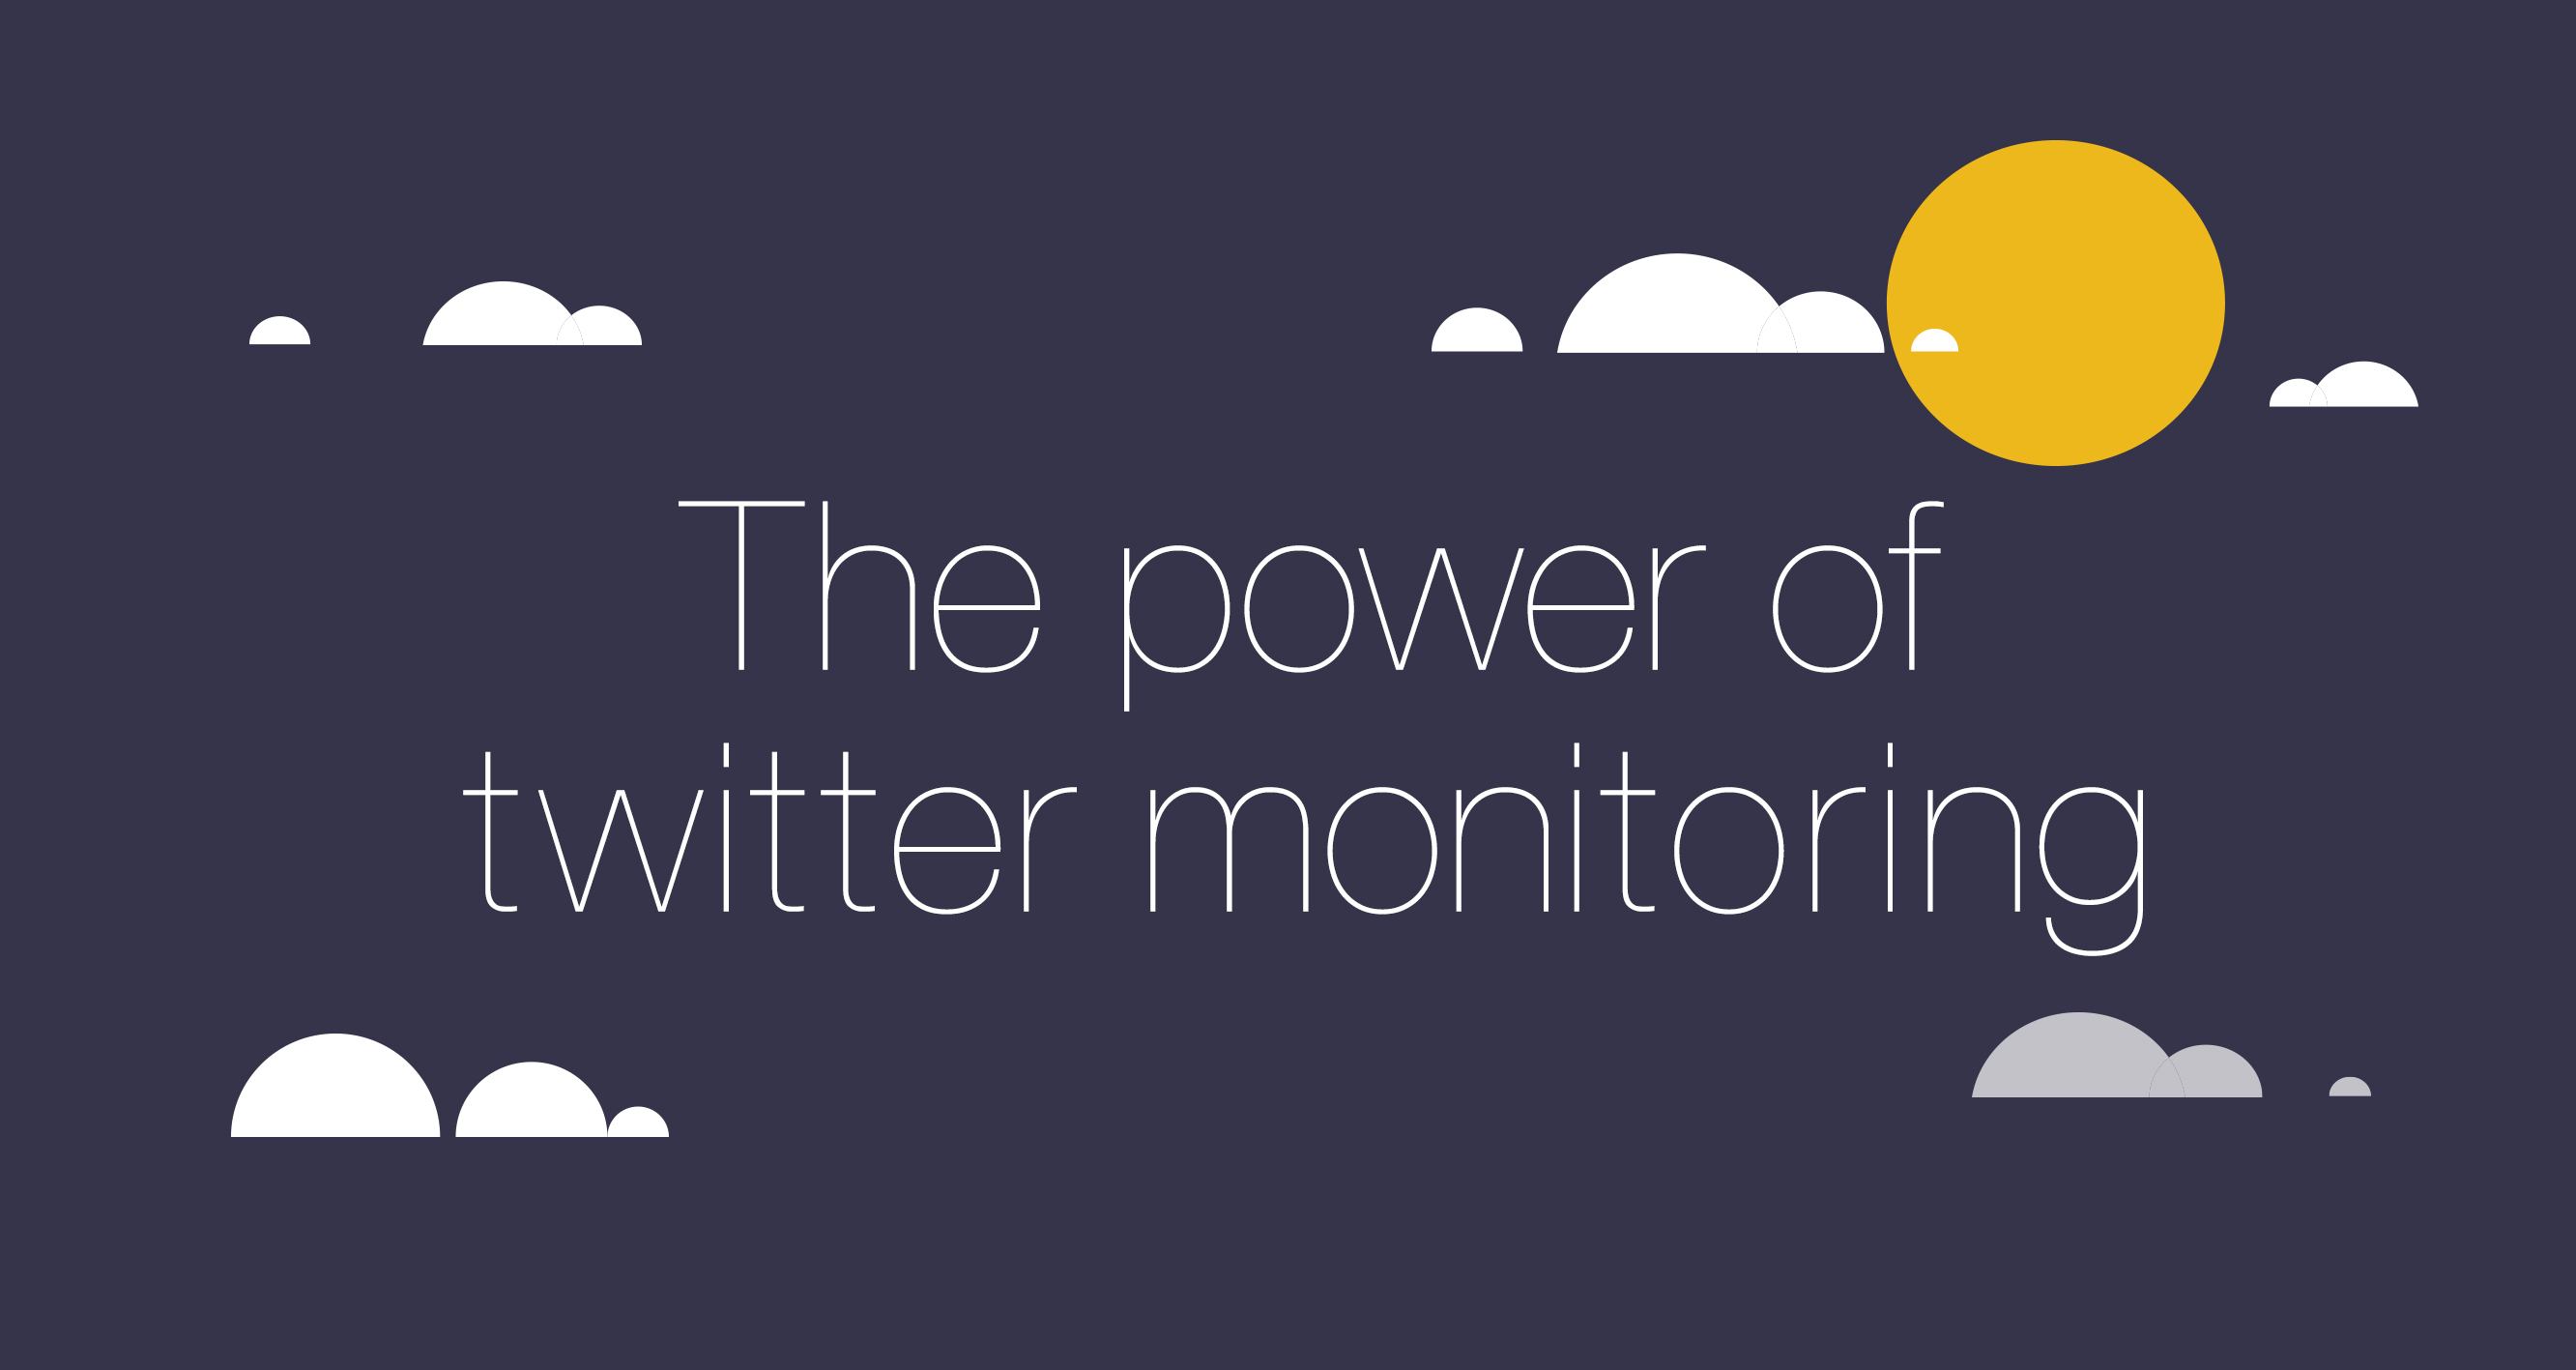 The power of twitter monitoring